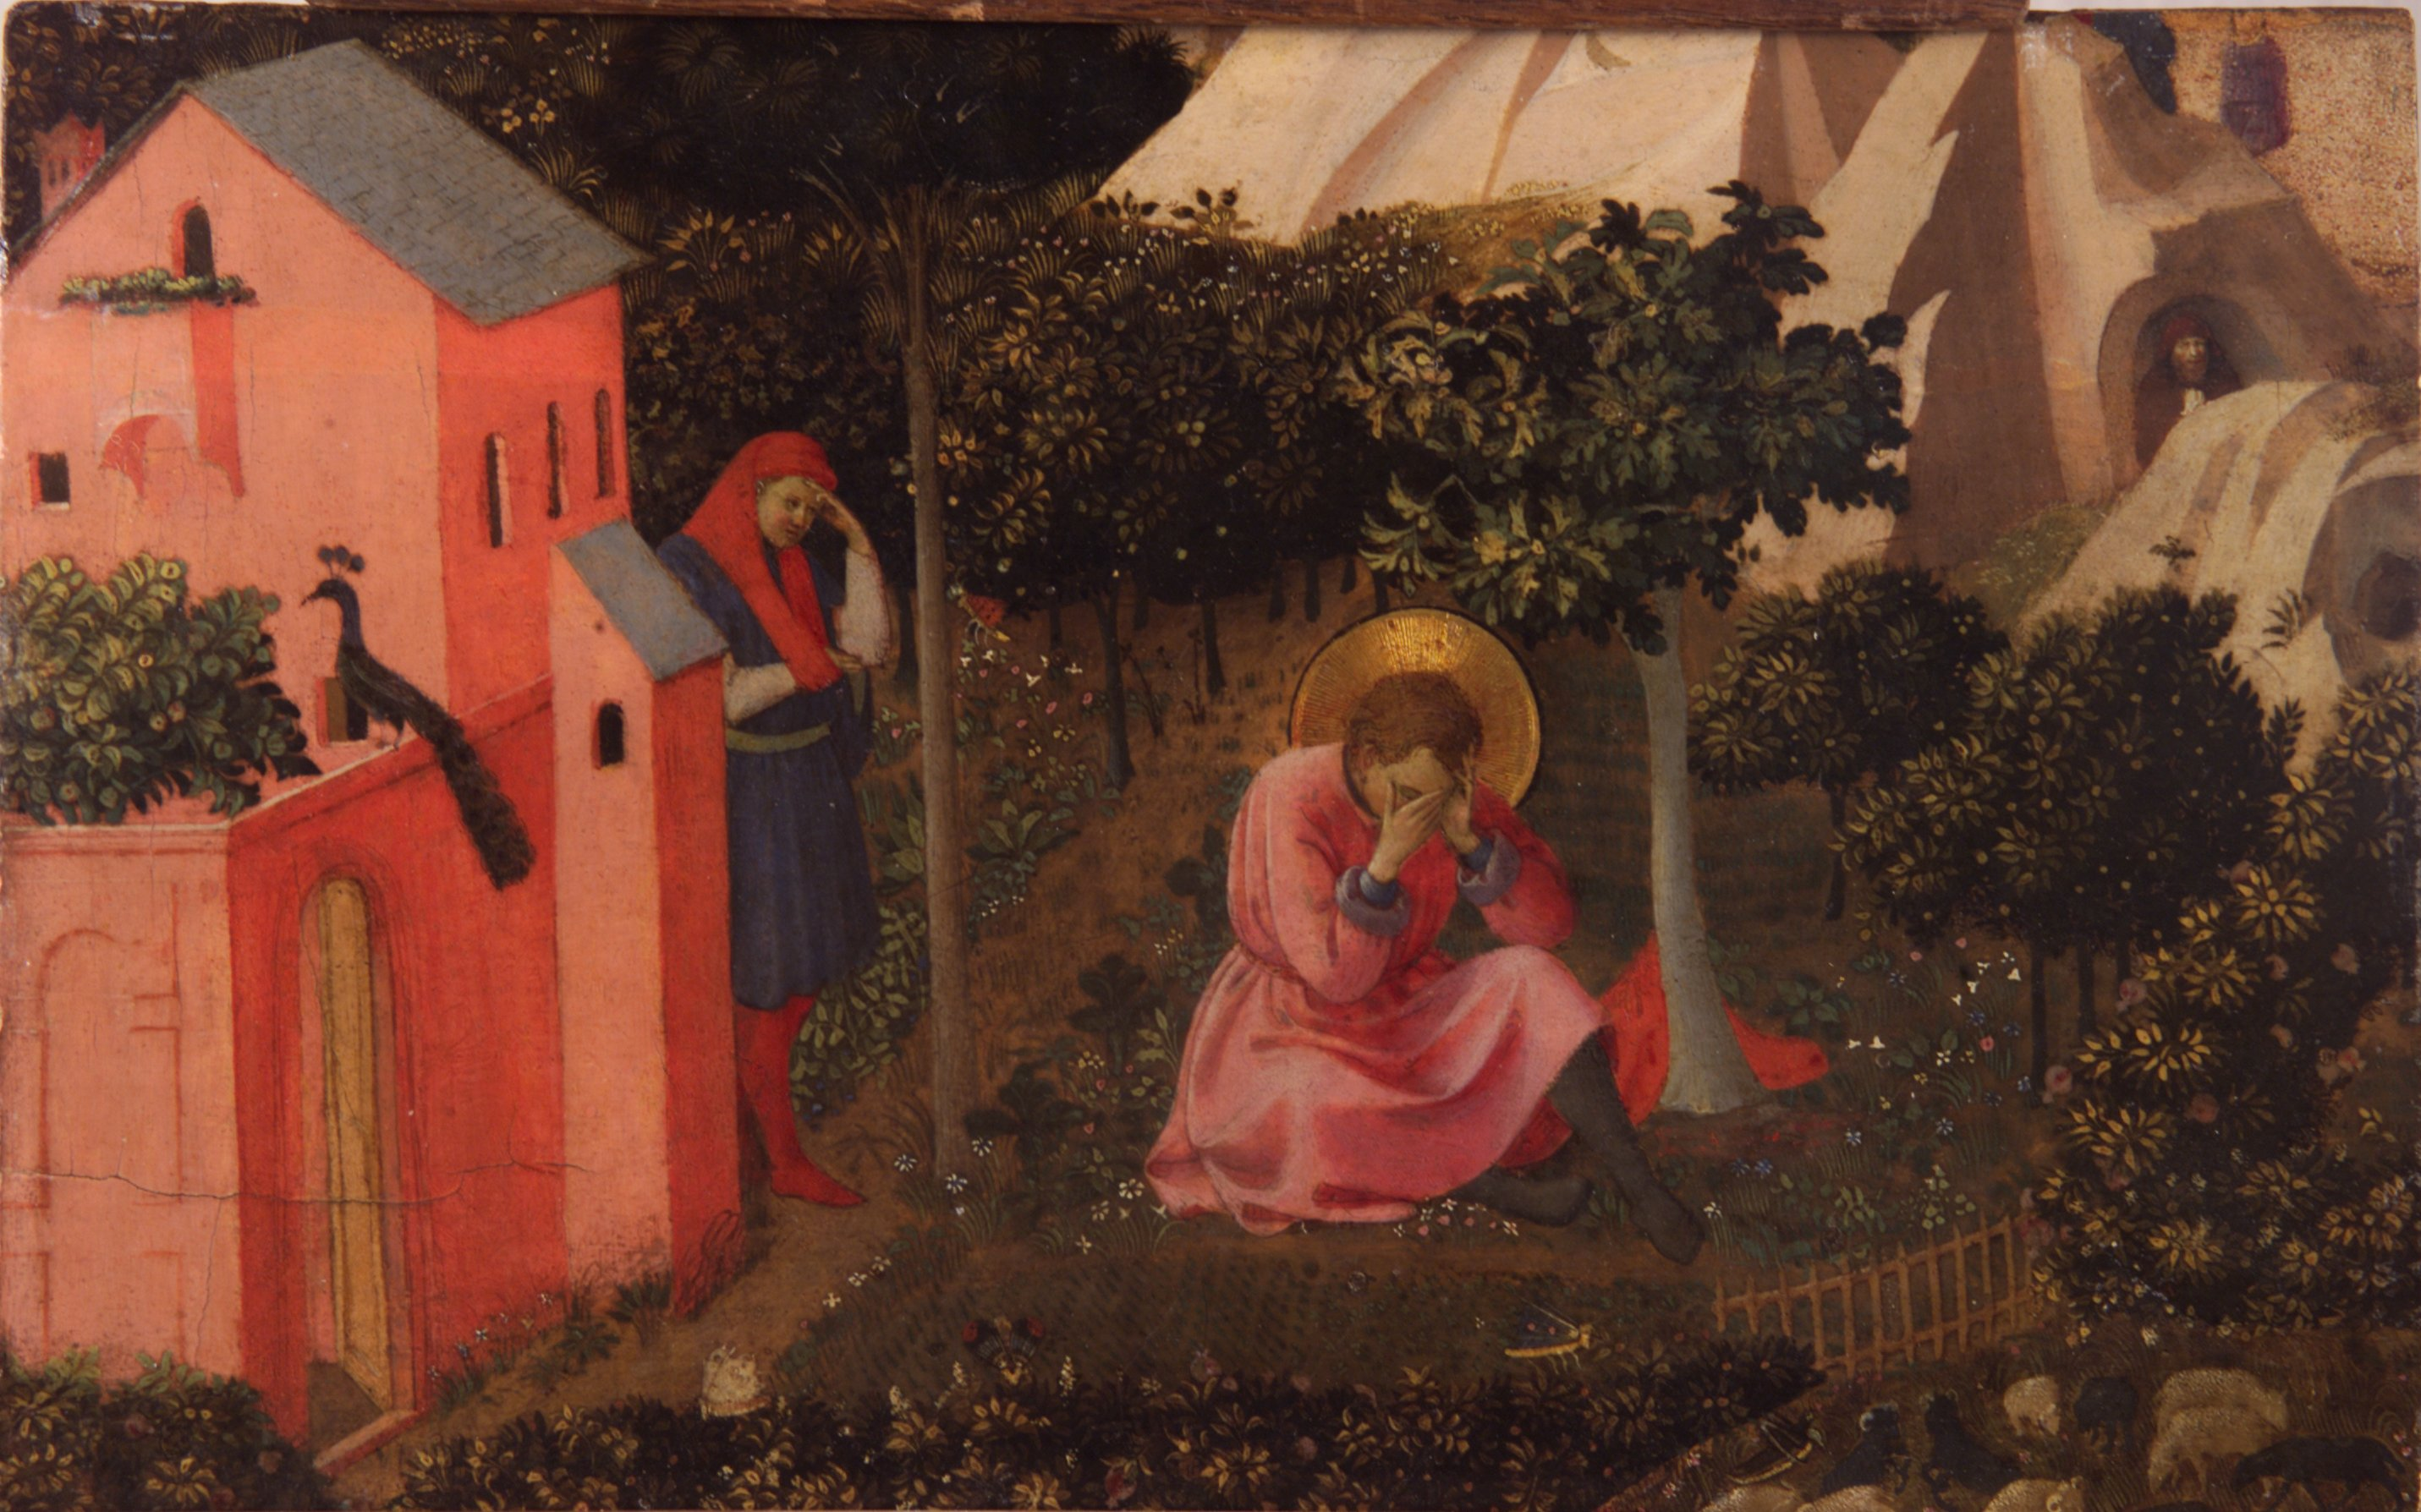 """Fra angelico - conversion de saint augustin"" by Fra Angelico (circa 1395–1455) and workshop - Unknown. Licensed under Public Domain via Commons."